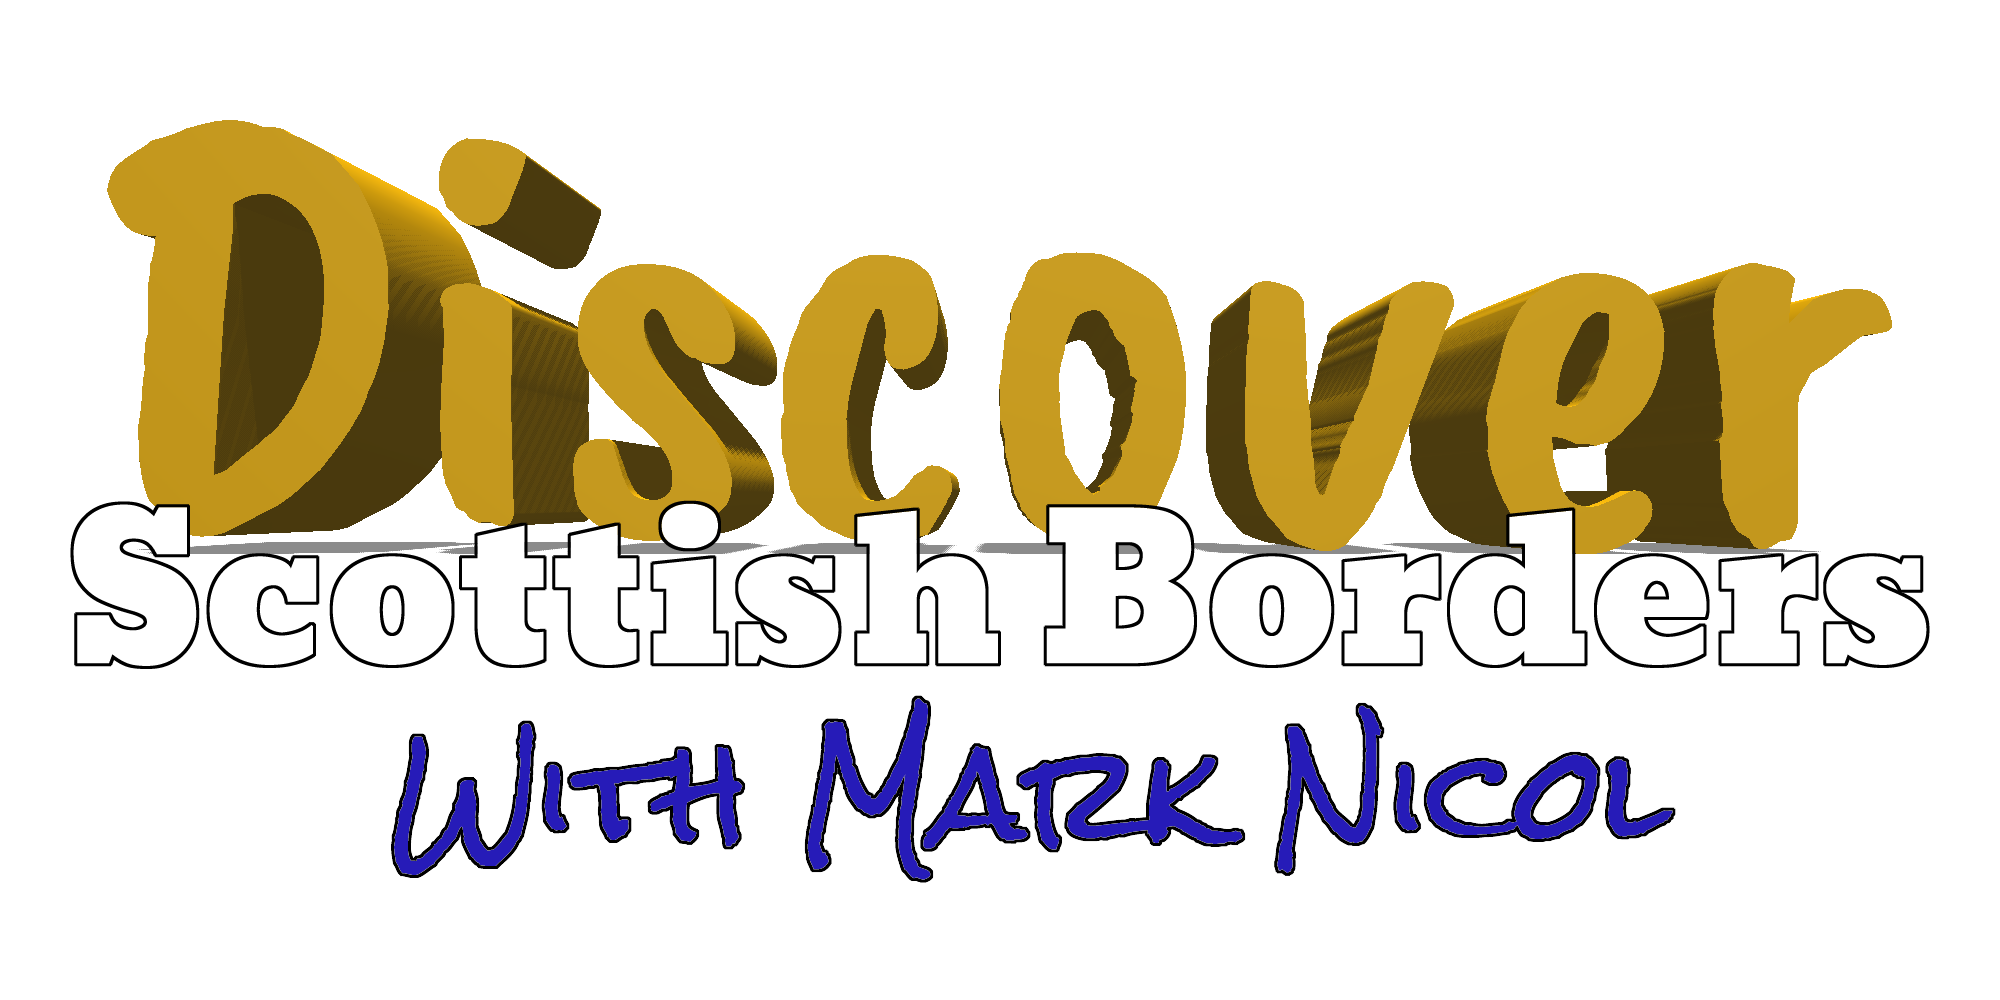 Tours by Discover Scottish Borders